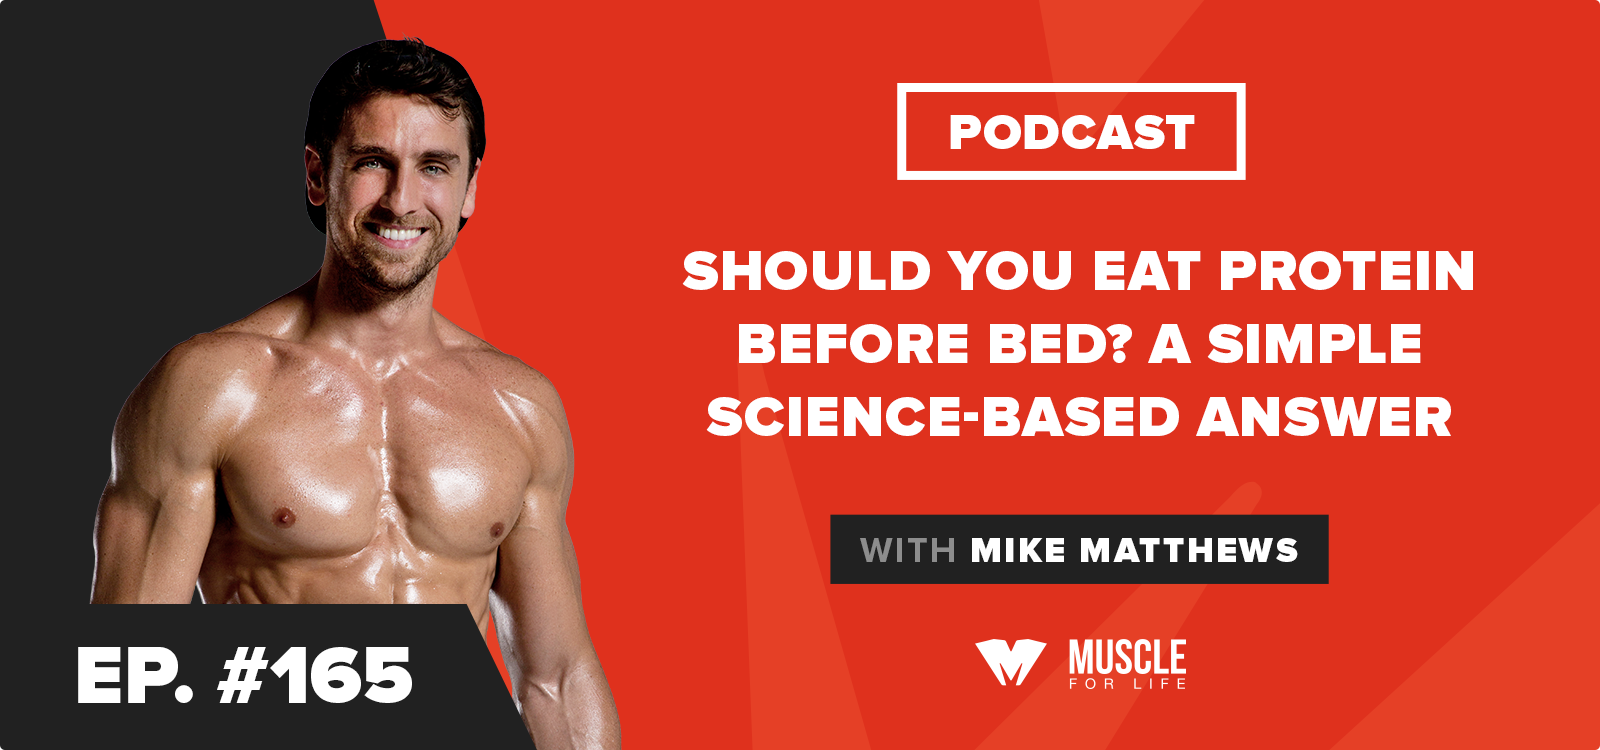 Should You Eat Protein Before Bed? A Simple Science-Based Answer